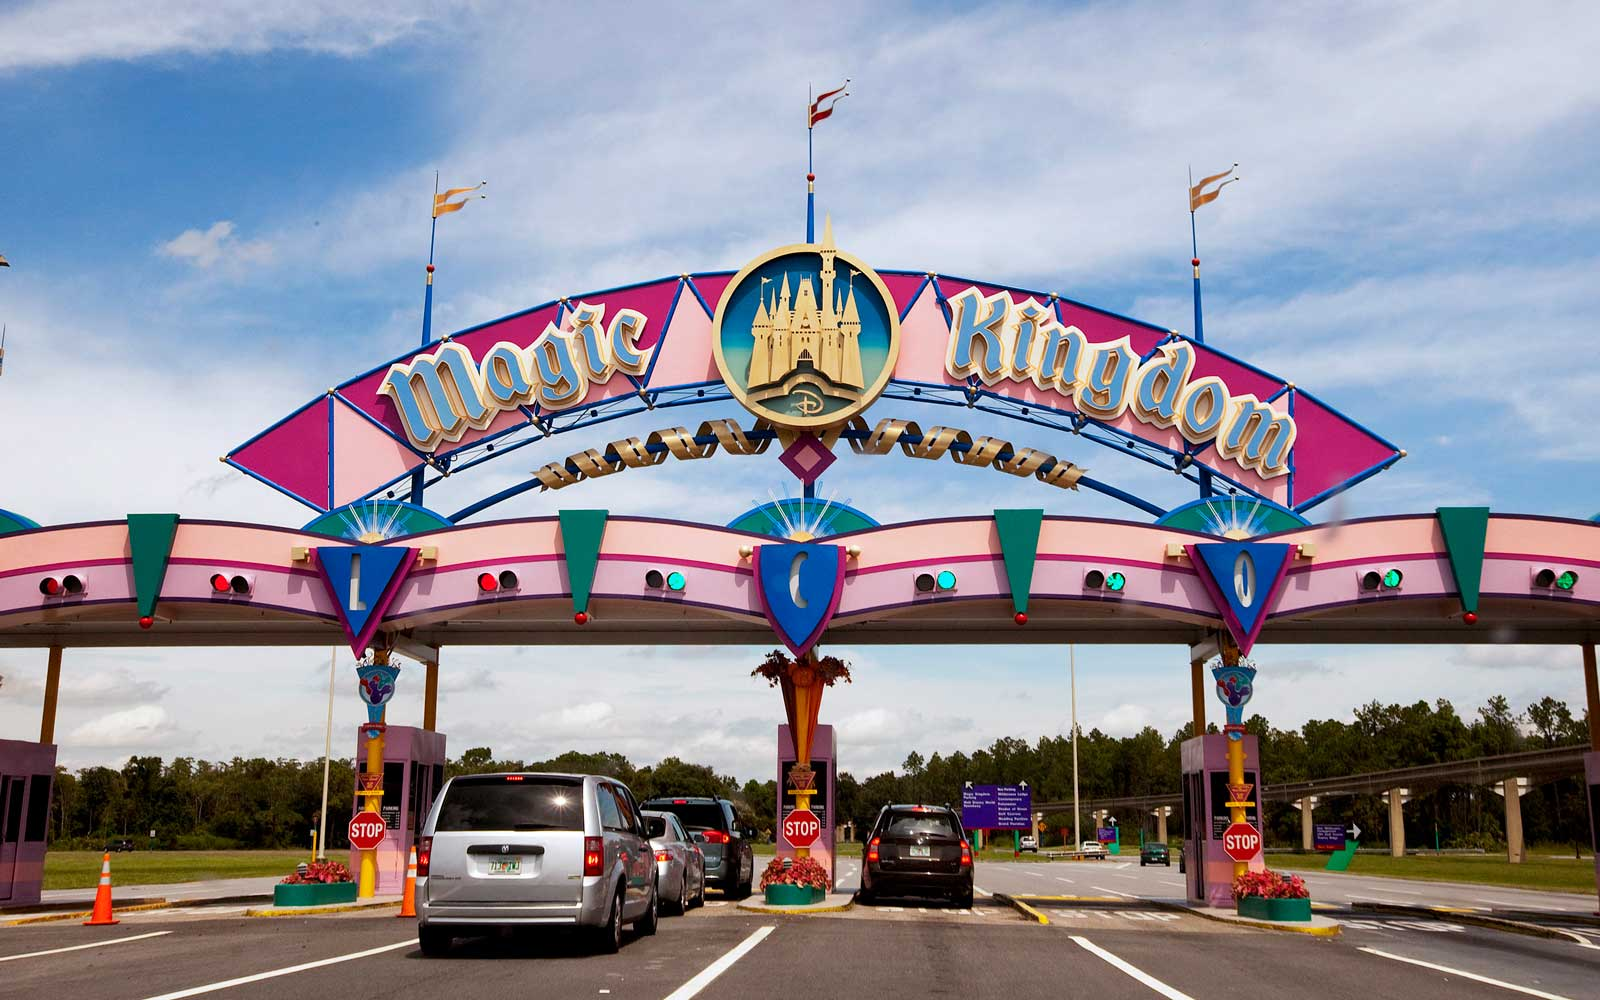 Magic Kingdom entrance at Walt Disney World